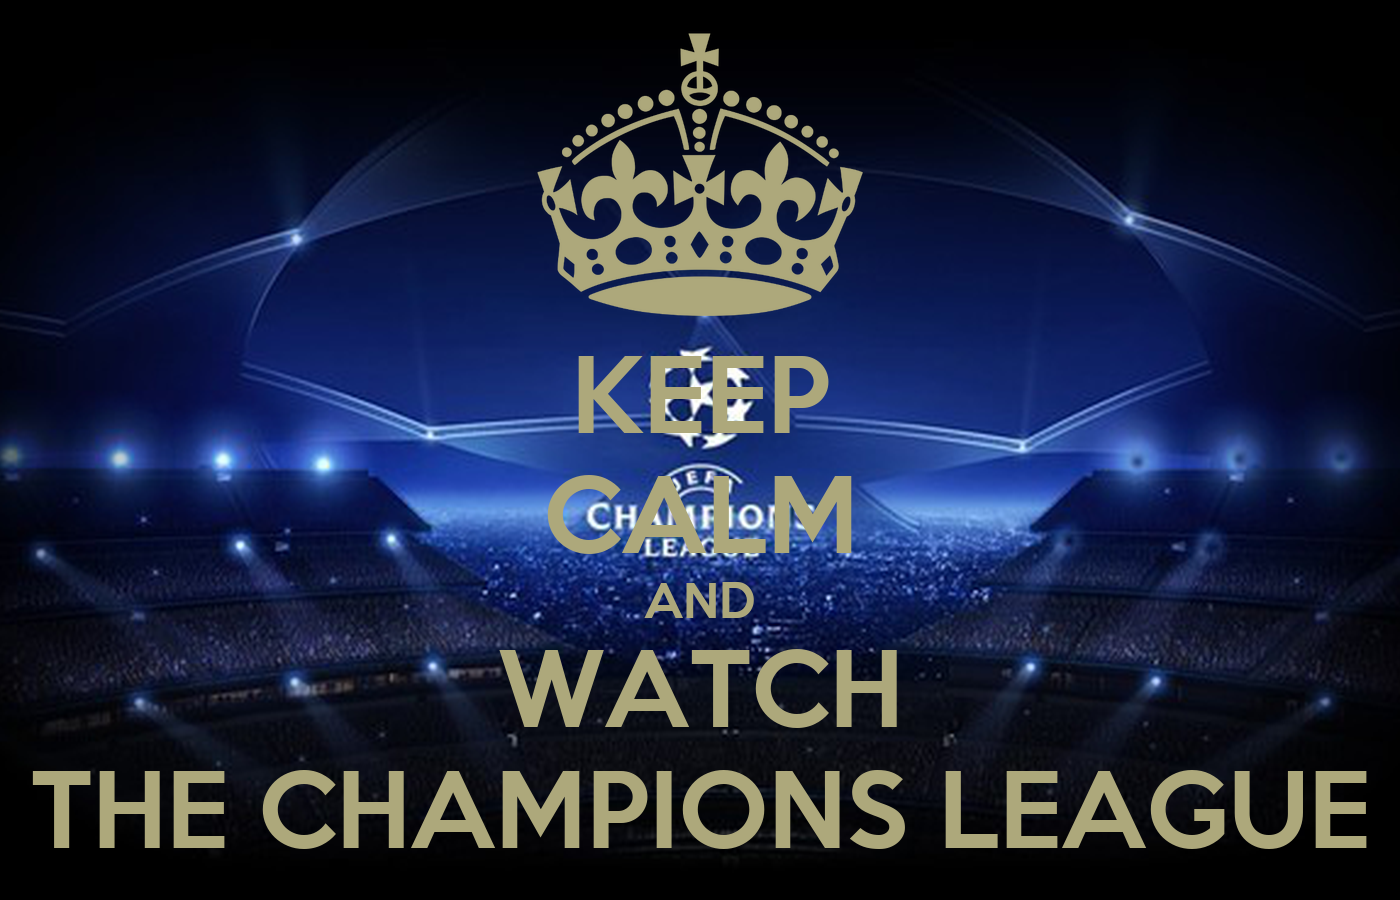 KEEP CALM AND WATCH THE CHAMPIONS LEAGUE Poster